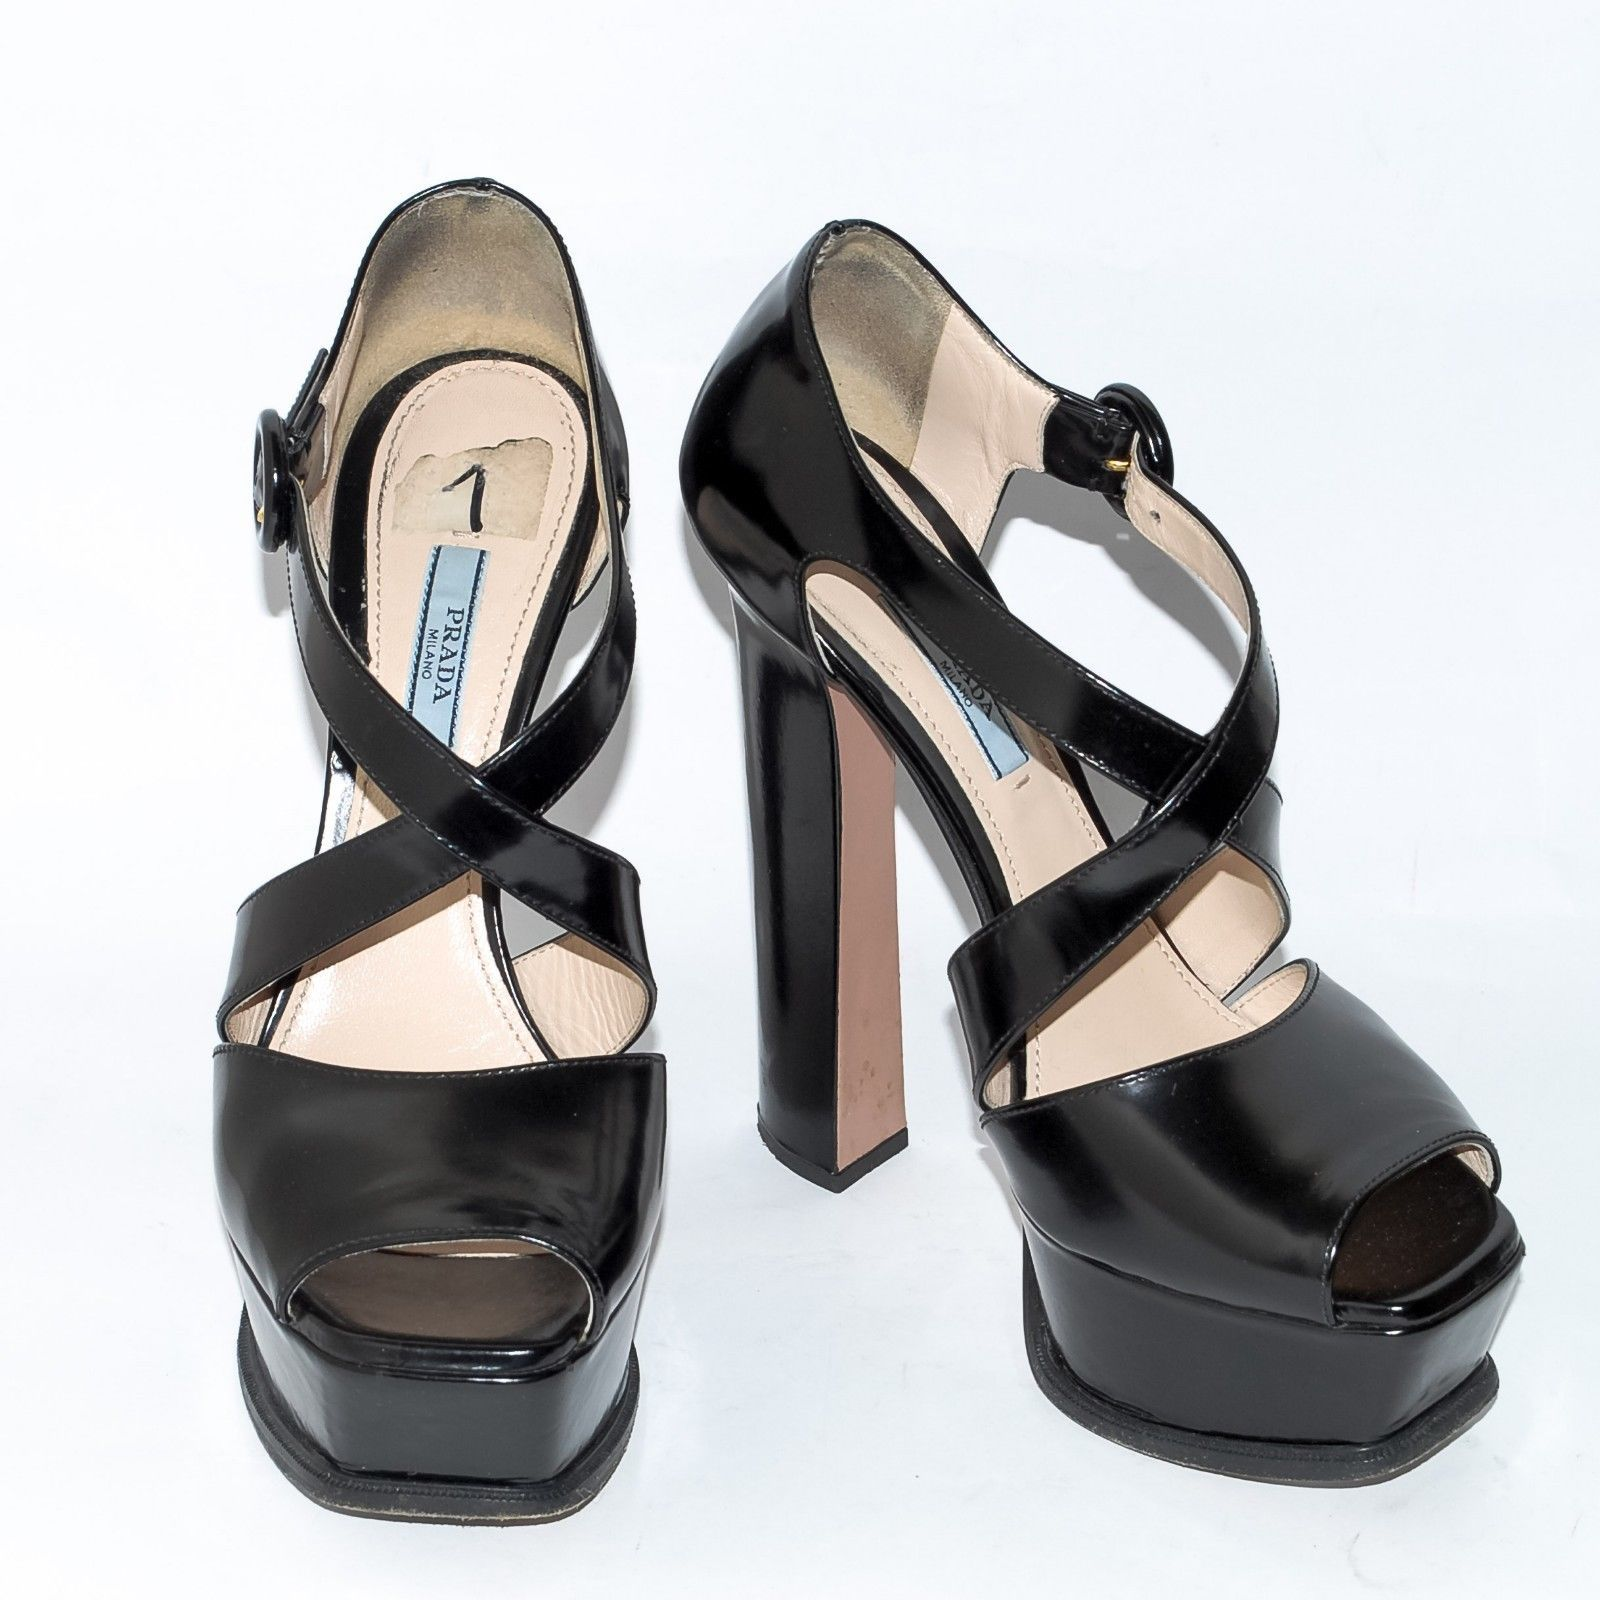 d3d67b4acb4 PRADA Black Patent Leather High Heel Sandals and 50 similar items